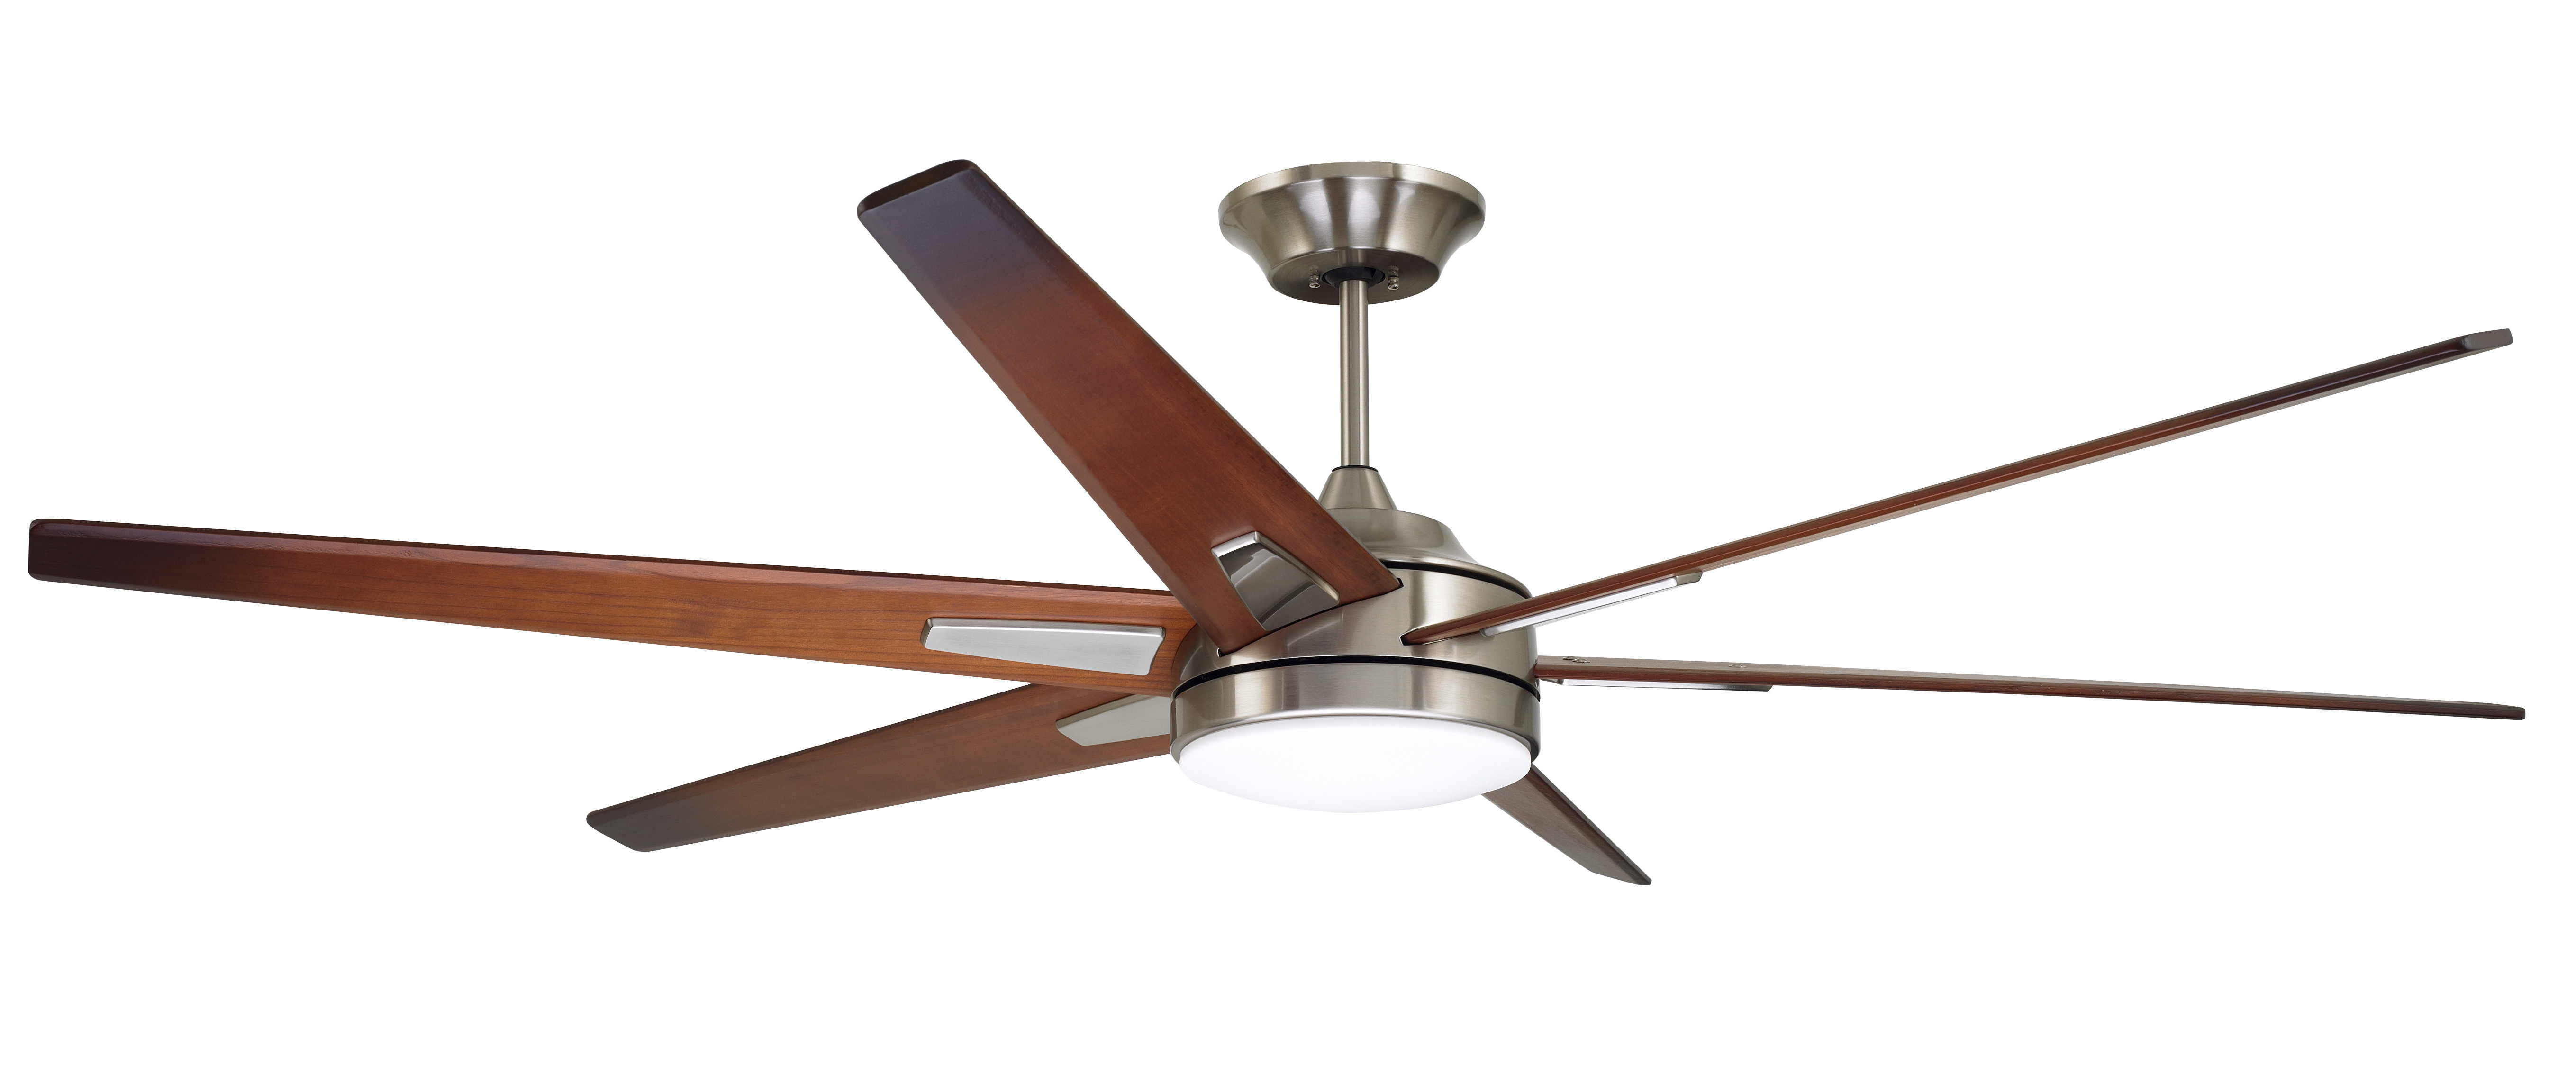 6 Blade Ceiling Fan (View 4 of 20)